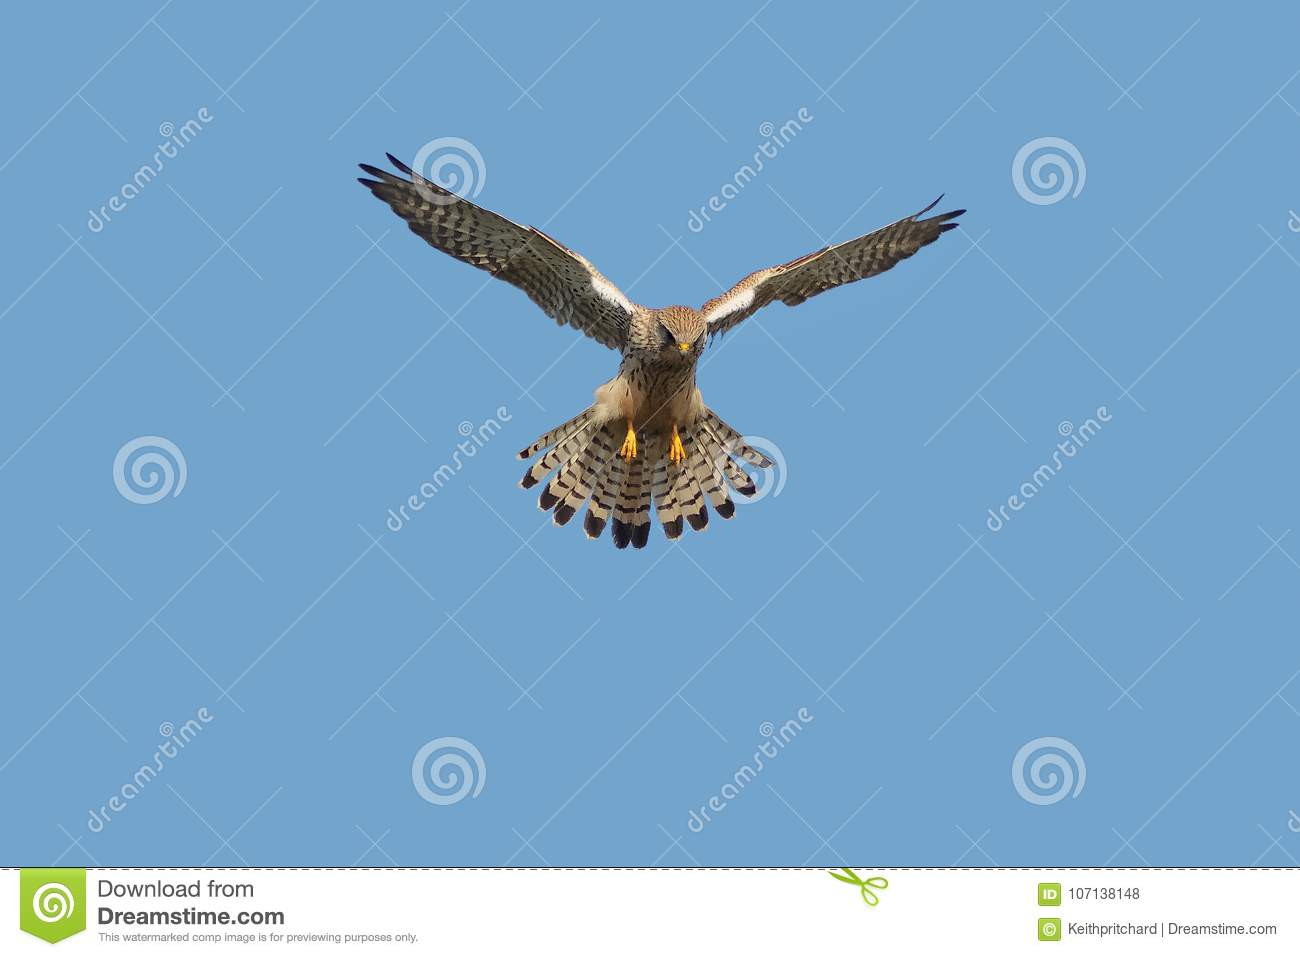 A Kestrel or Common Kestrel hovering in flight.